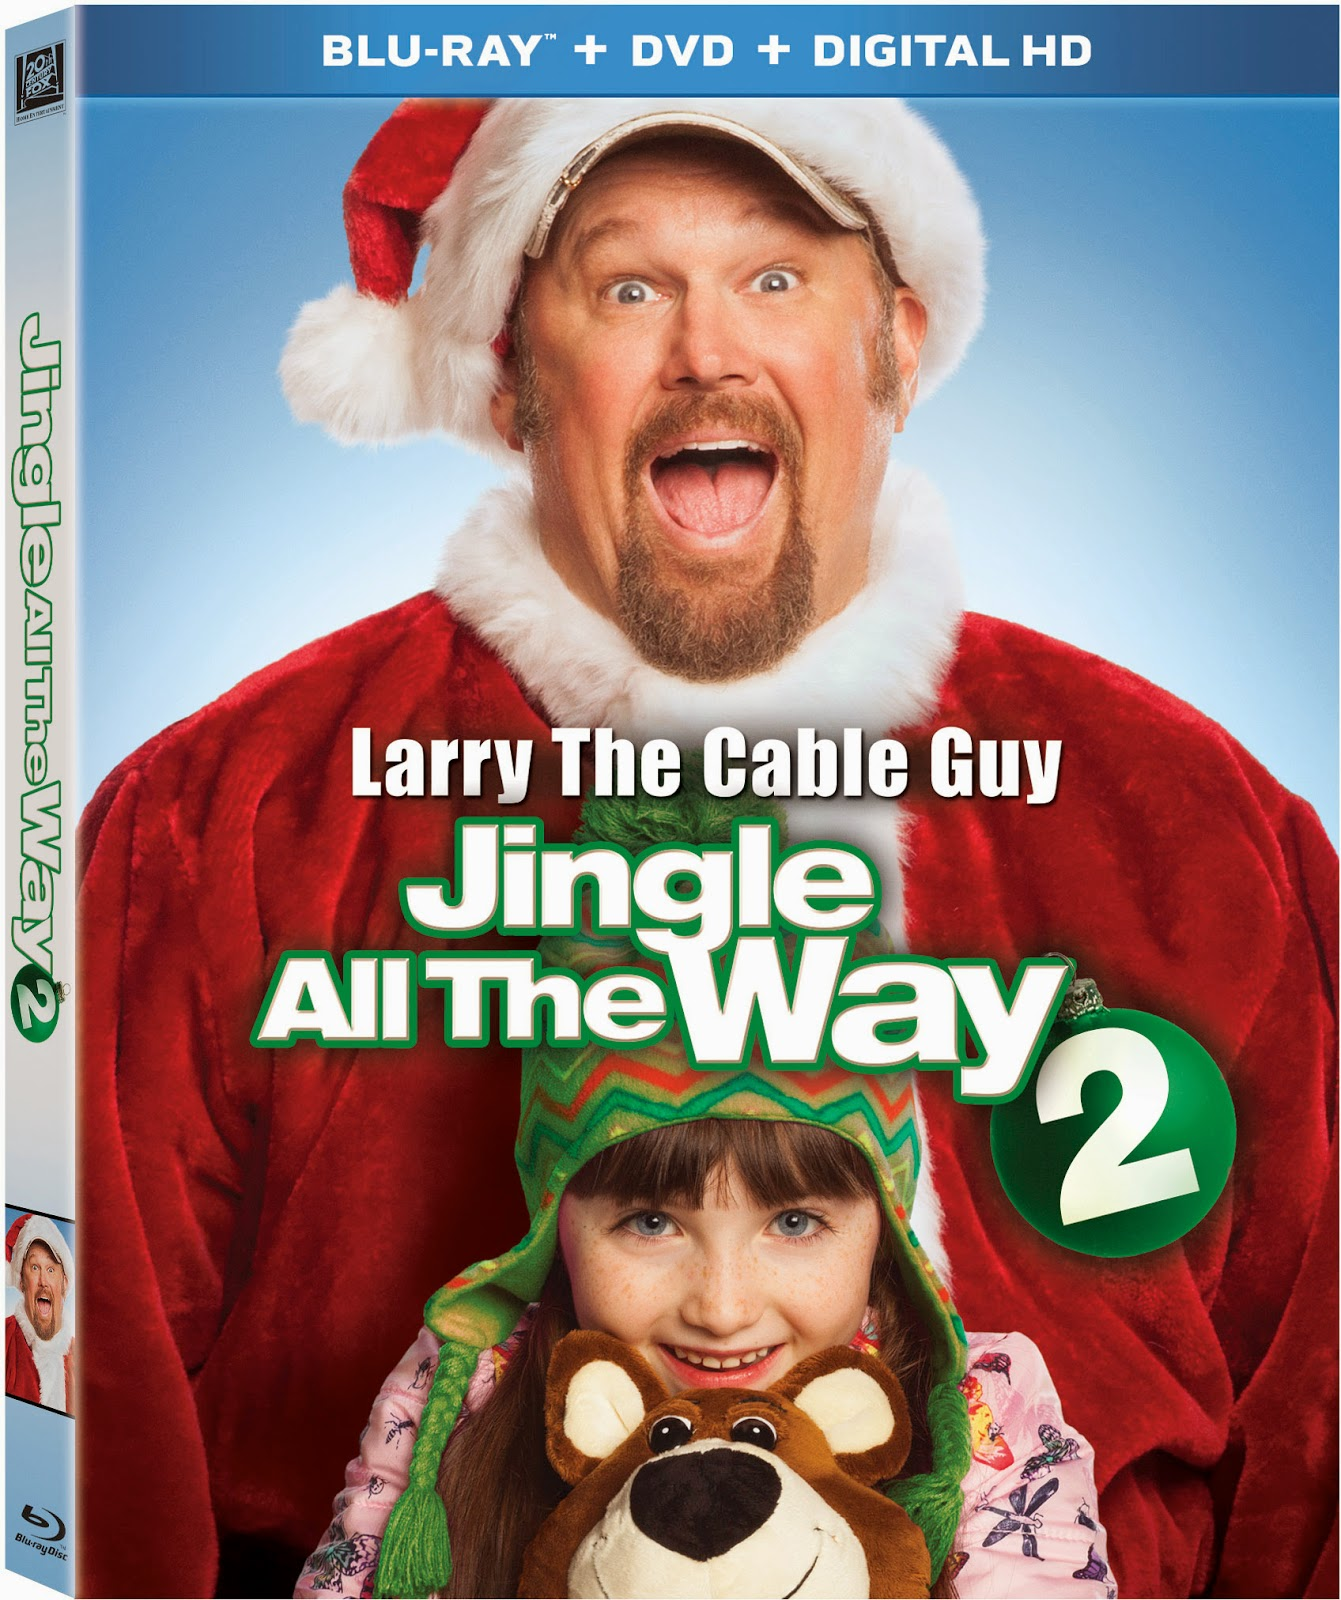 http://www.amazon.com/Jingle-All-Way-2-Blu-ray/dp/B00OGT2VFI/